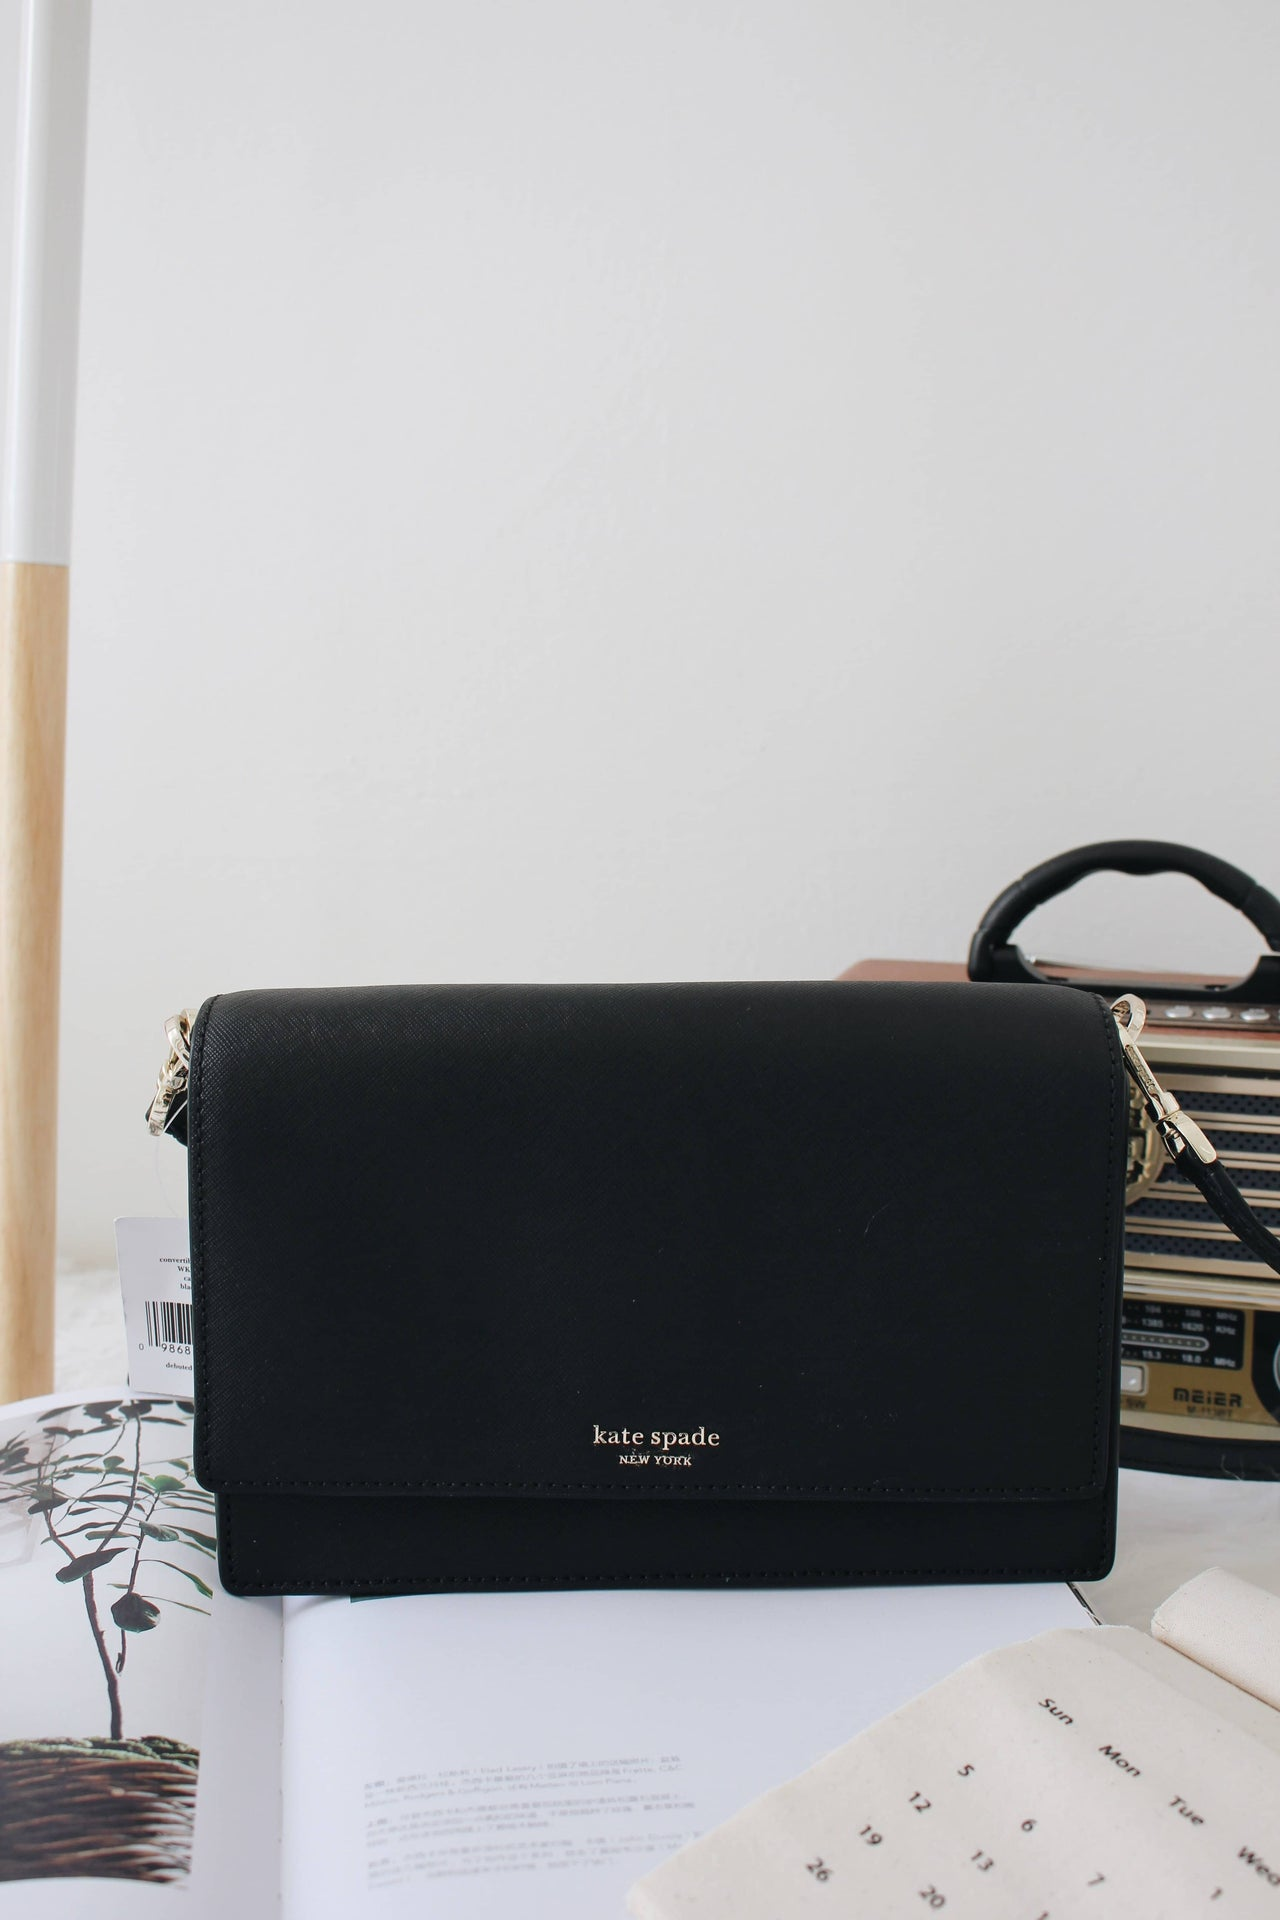 KATE SPADE CROSSBODY BAG/ CLUTCH (2 WAYS) - LovelyMadness Clothing Online Fashion Malaysia